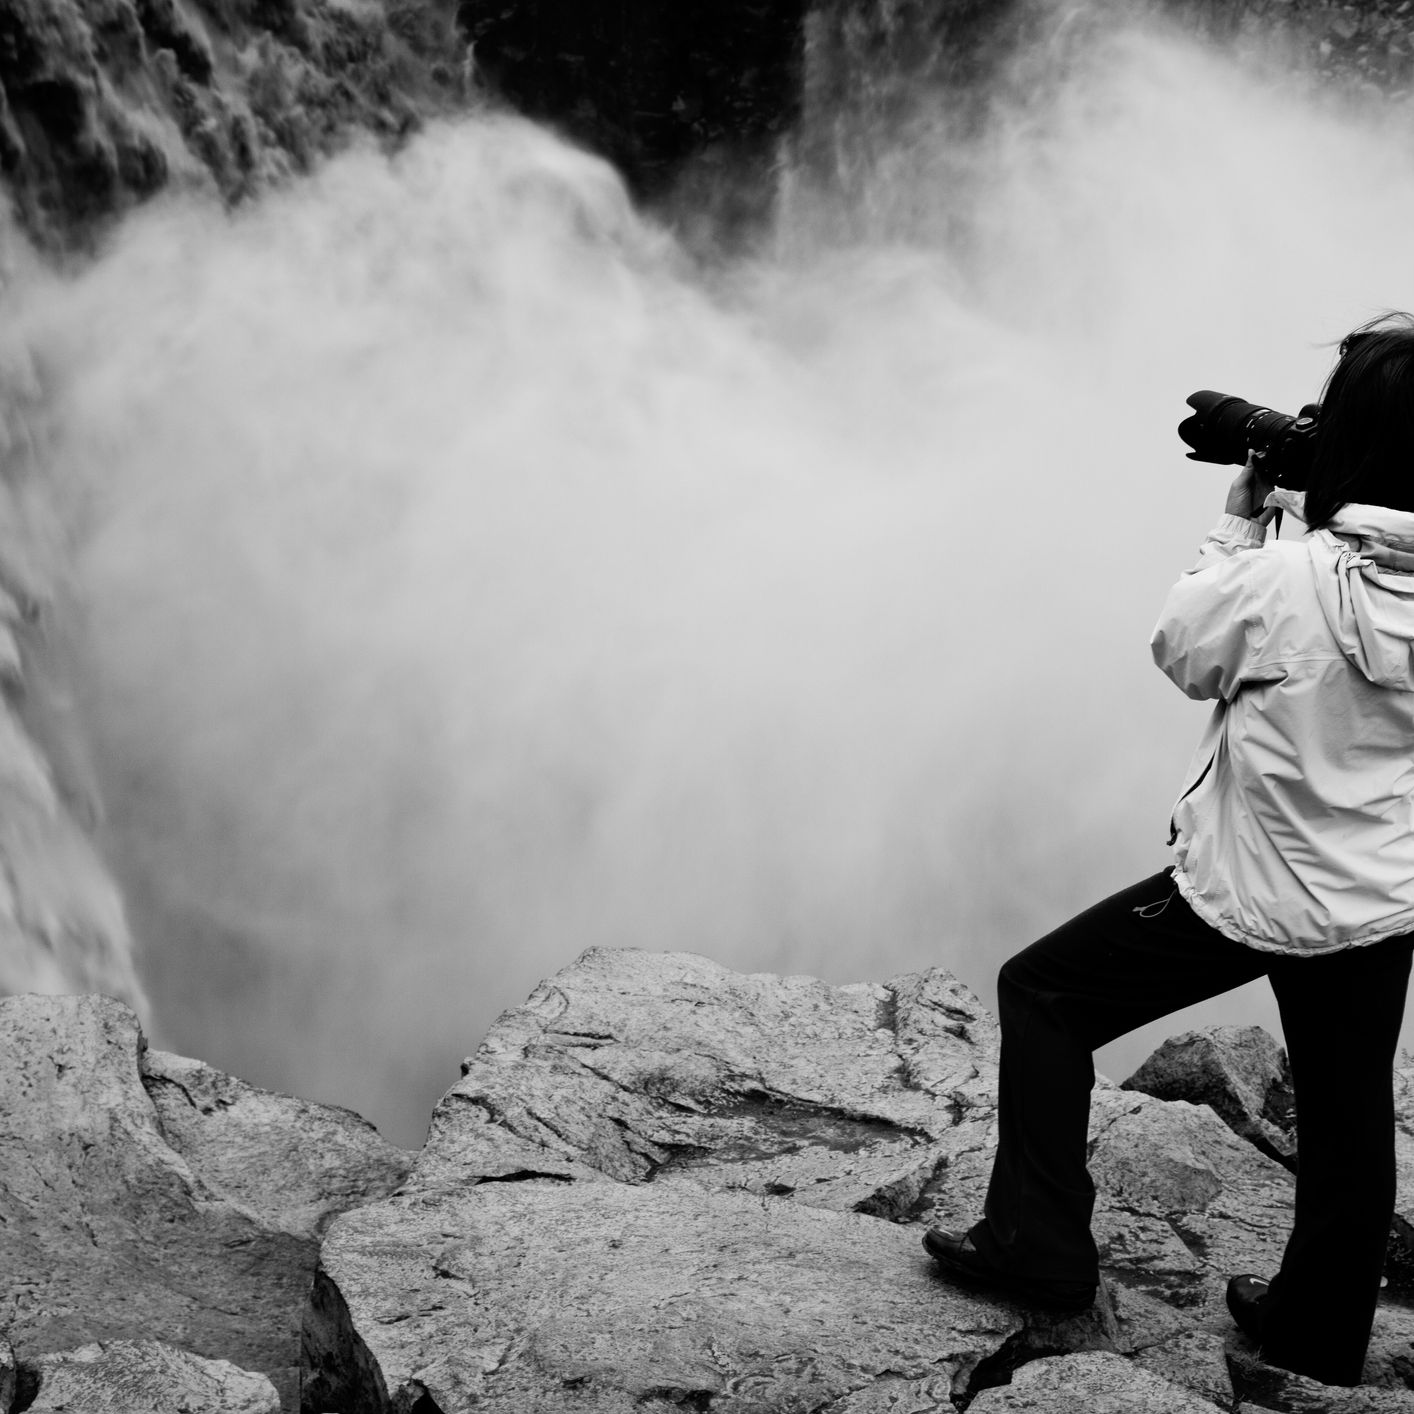 Black and White Photography: How to Capture Great B&W Pictures